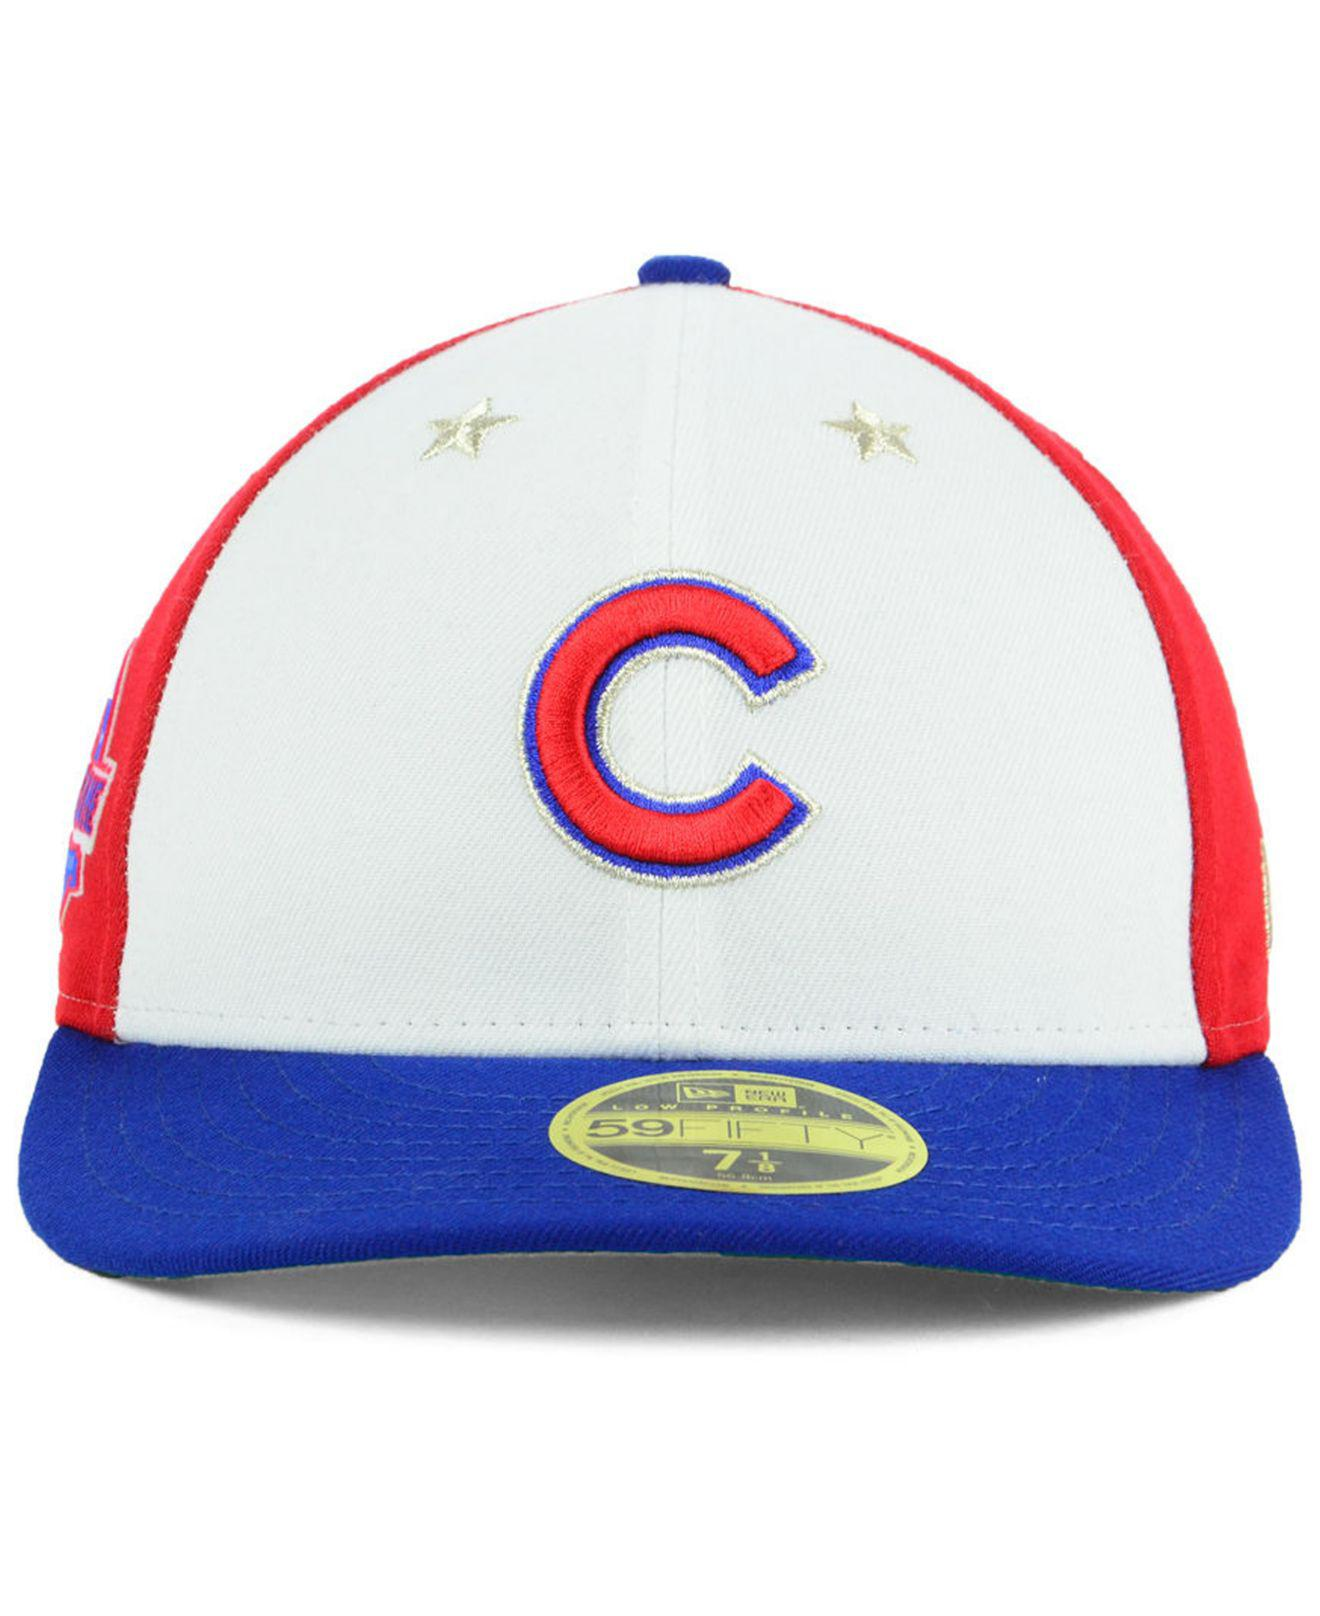 25a9e86cdb9 Lyst - KTZ Chicago Cubs All Star Game Patch Low Profile 59fifty Fitted Cap  2018 for Men